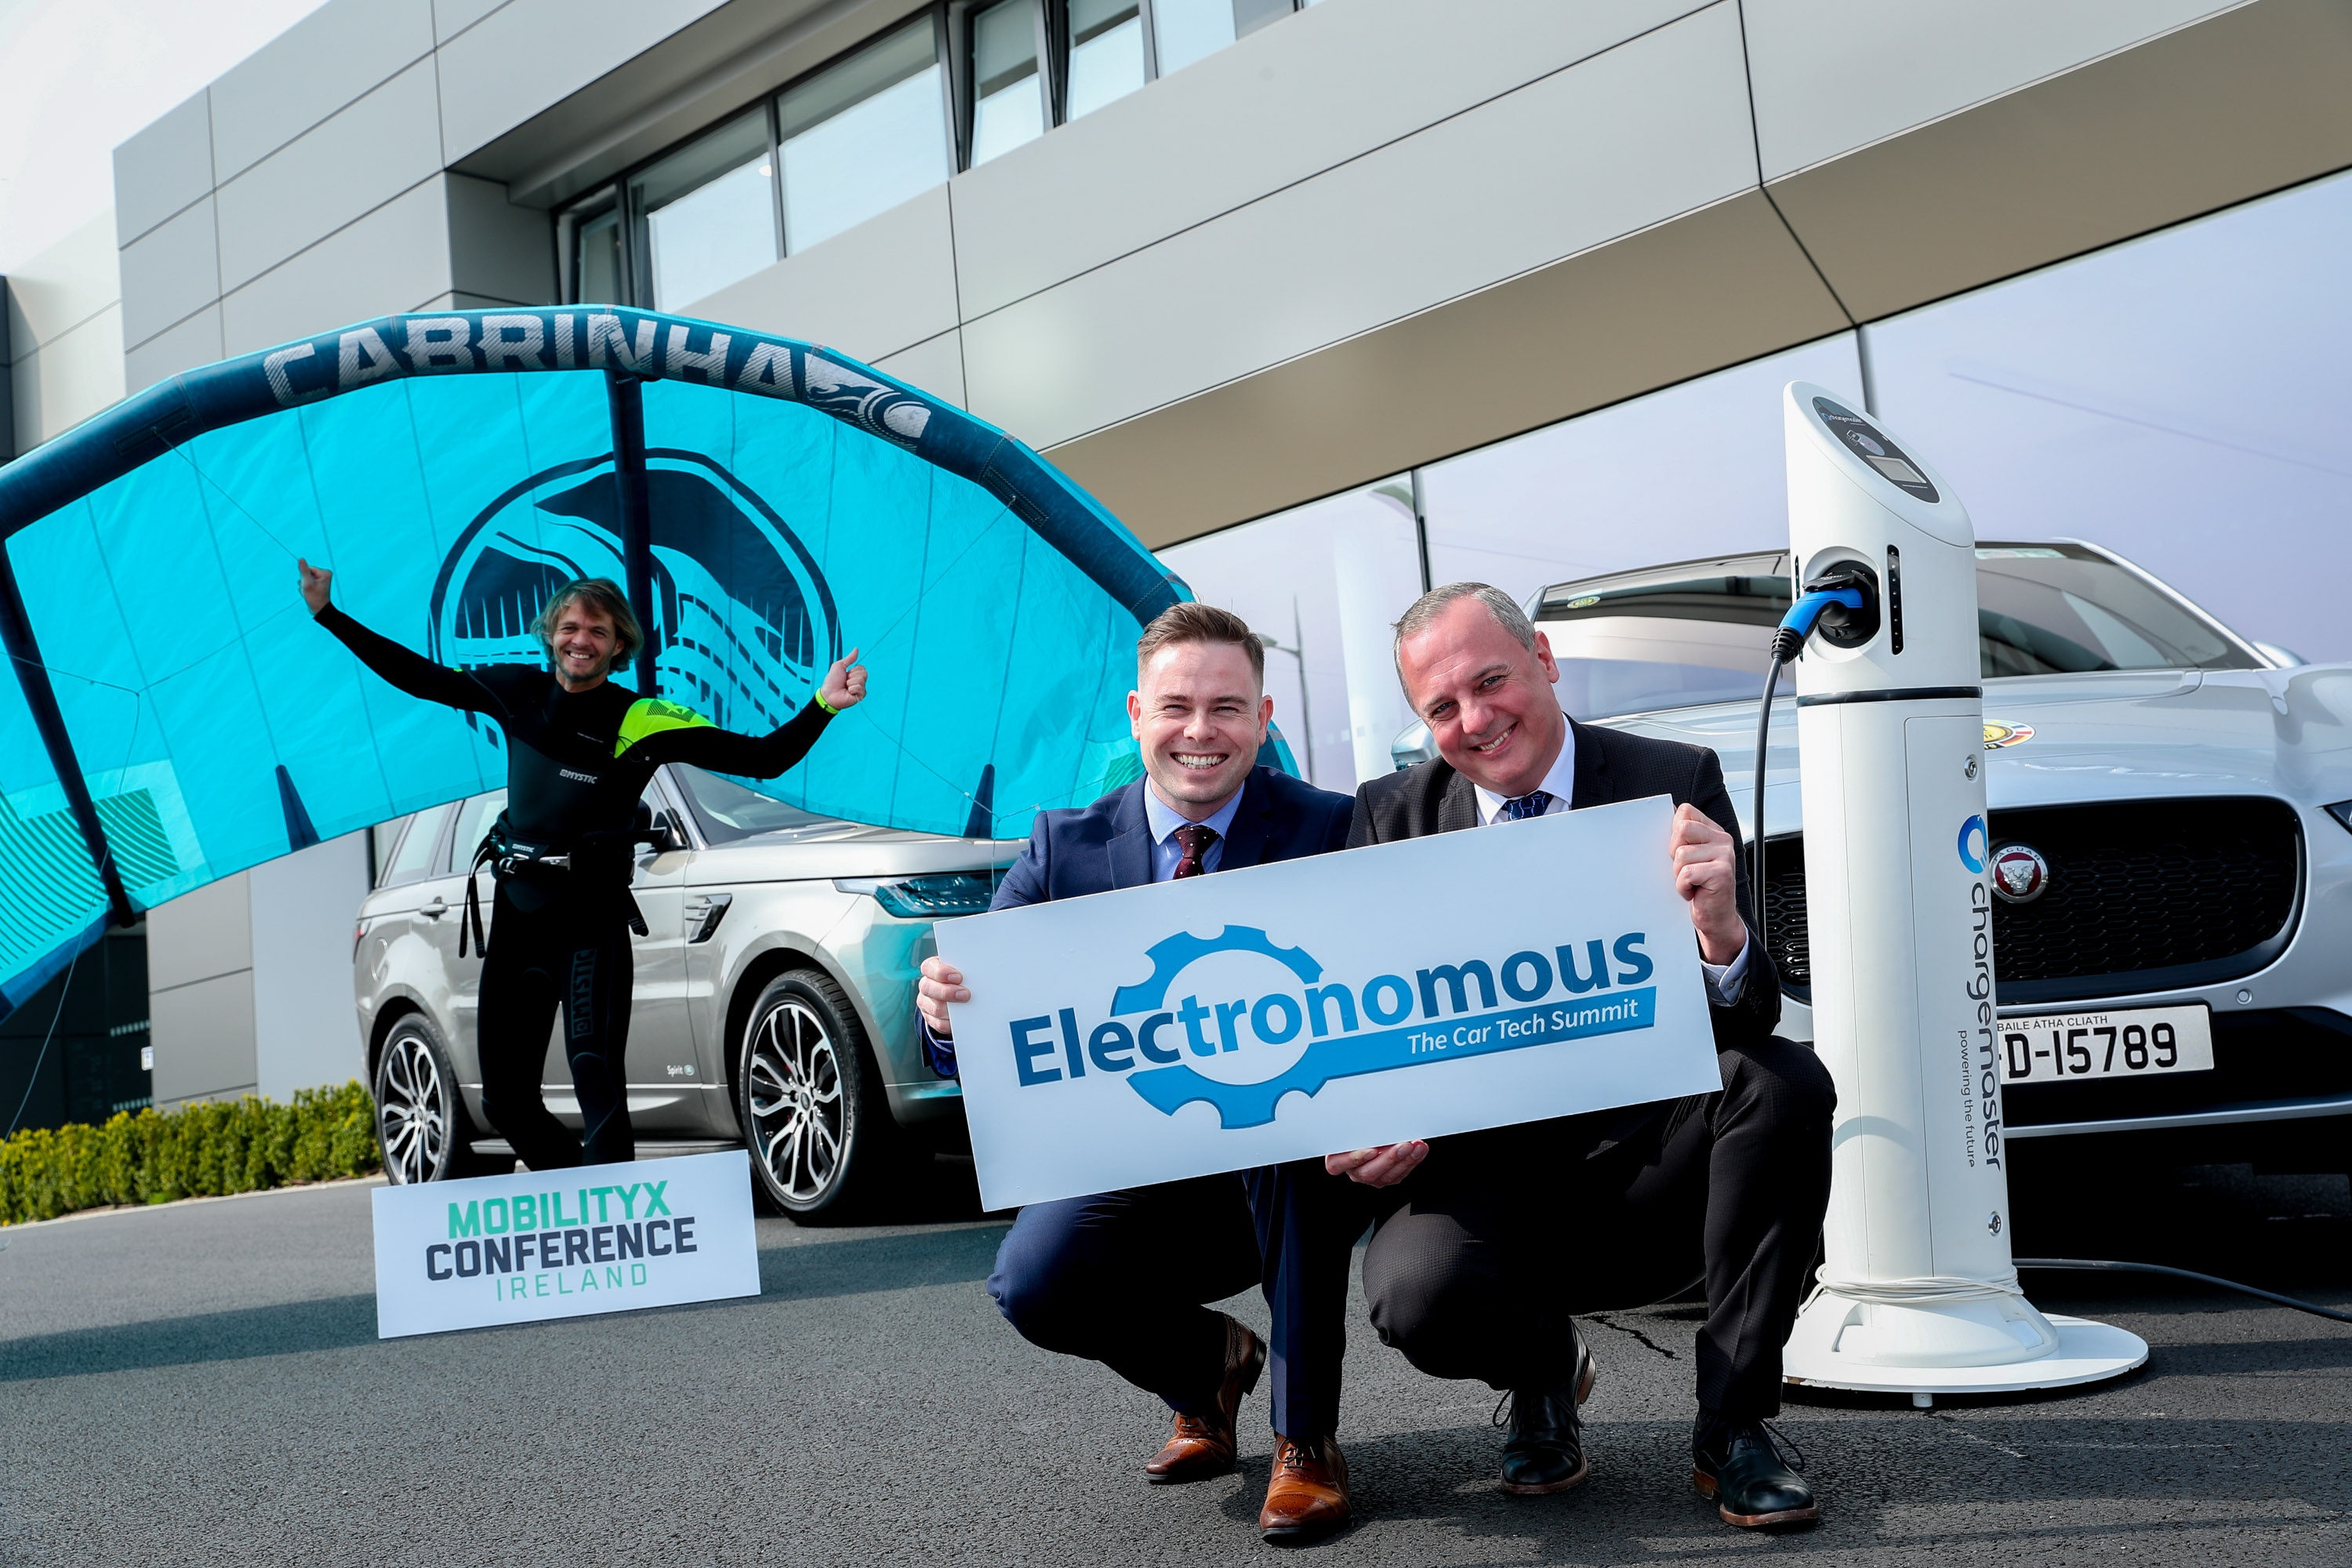 World experts to speak at Electronomous